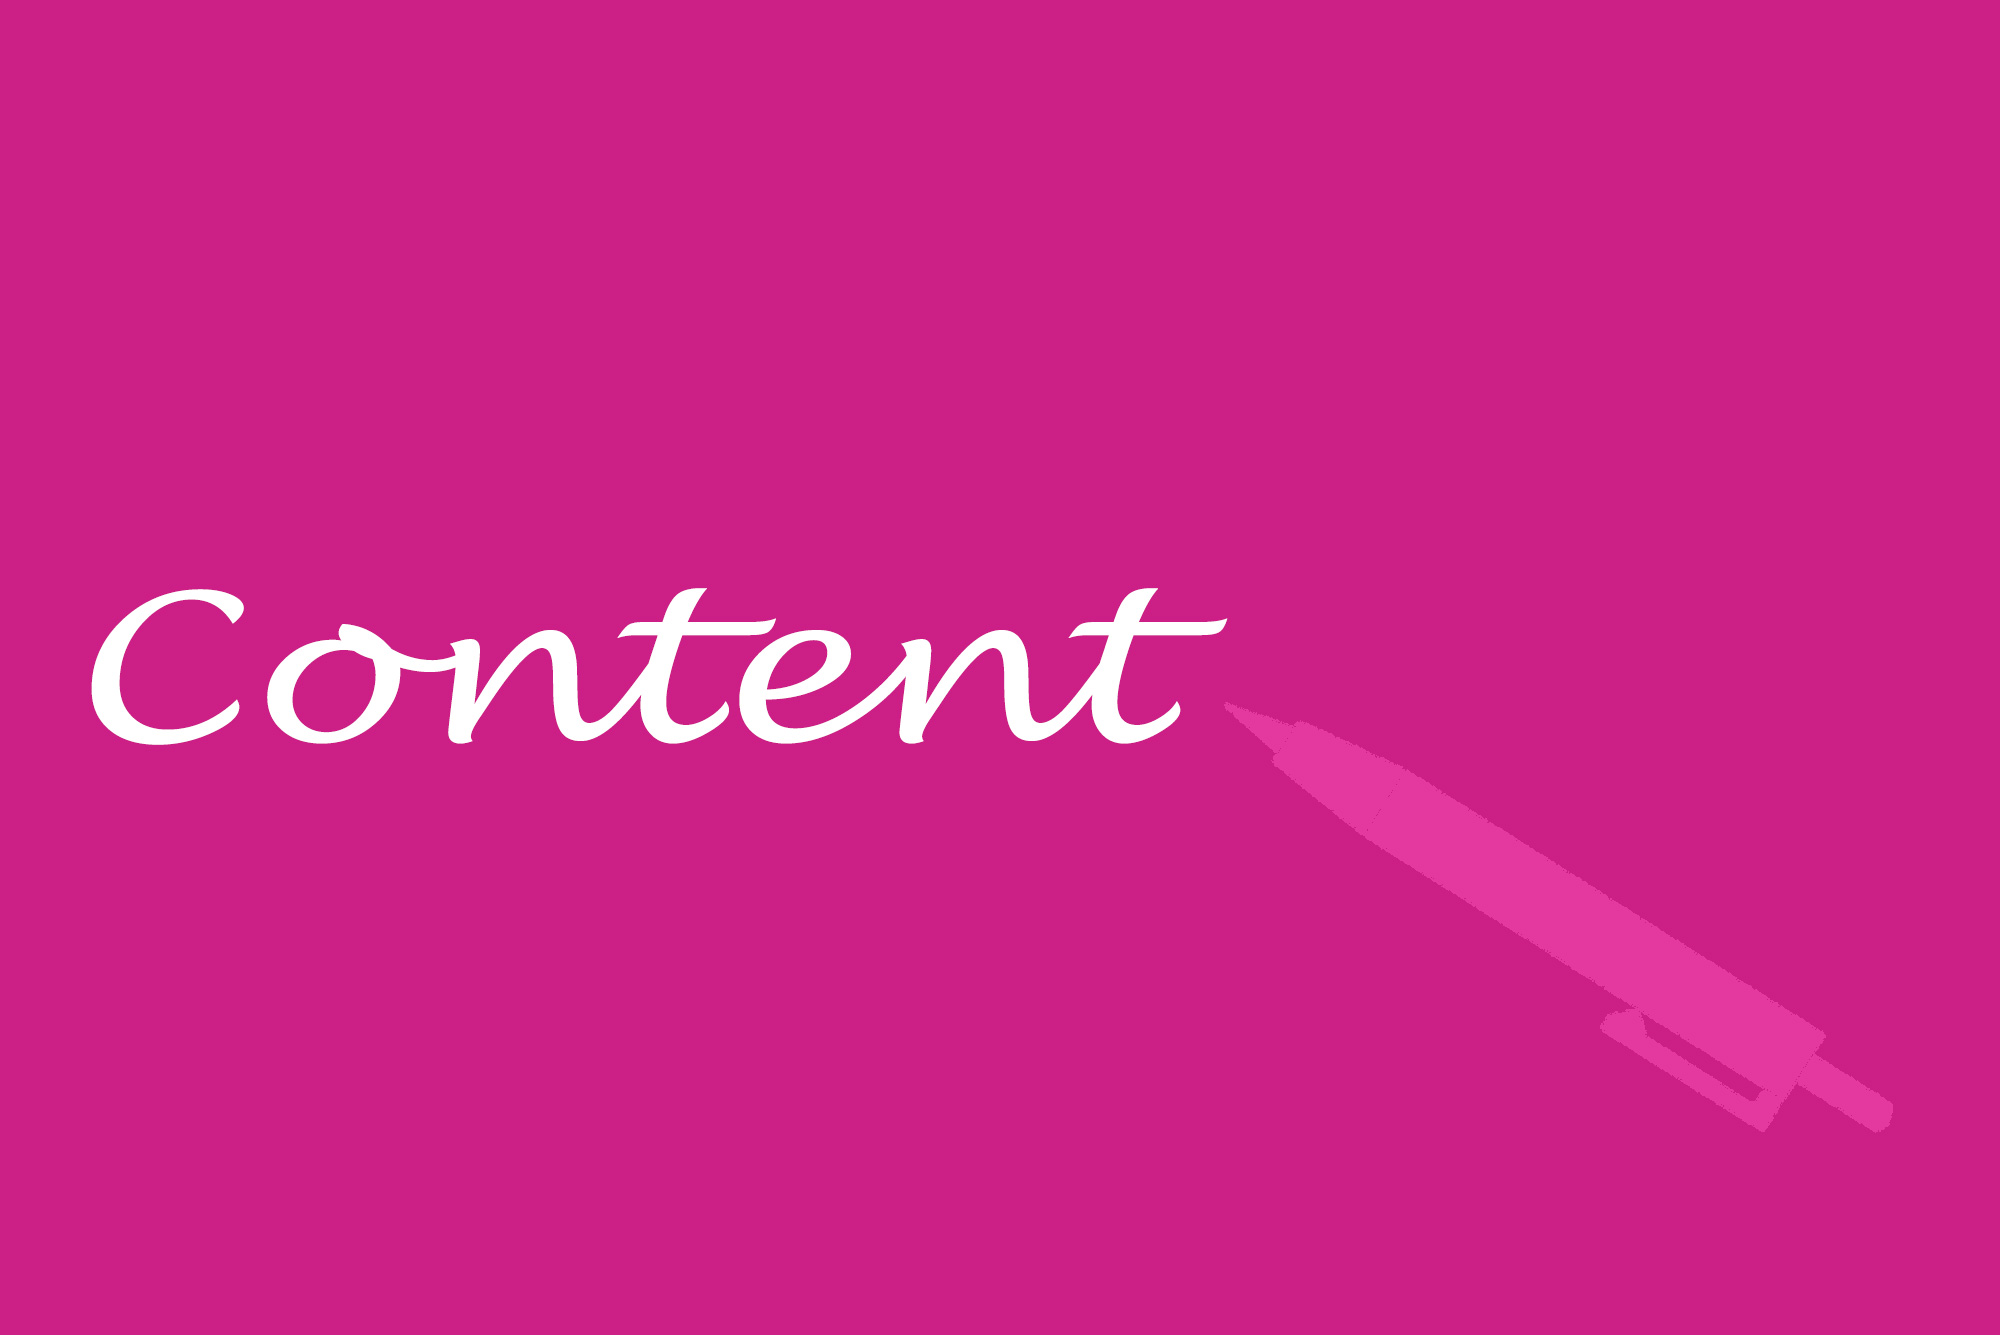 """Content"" written in white, with a pink background and a light pink pen silhouette"